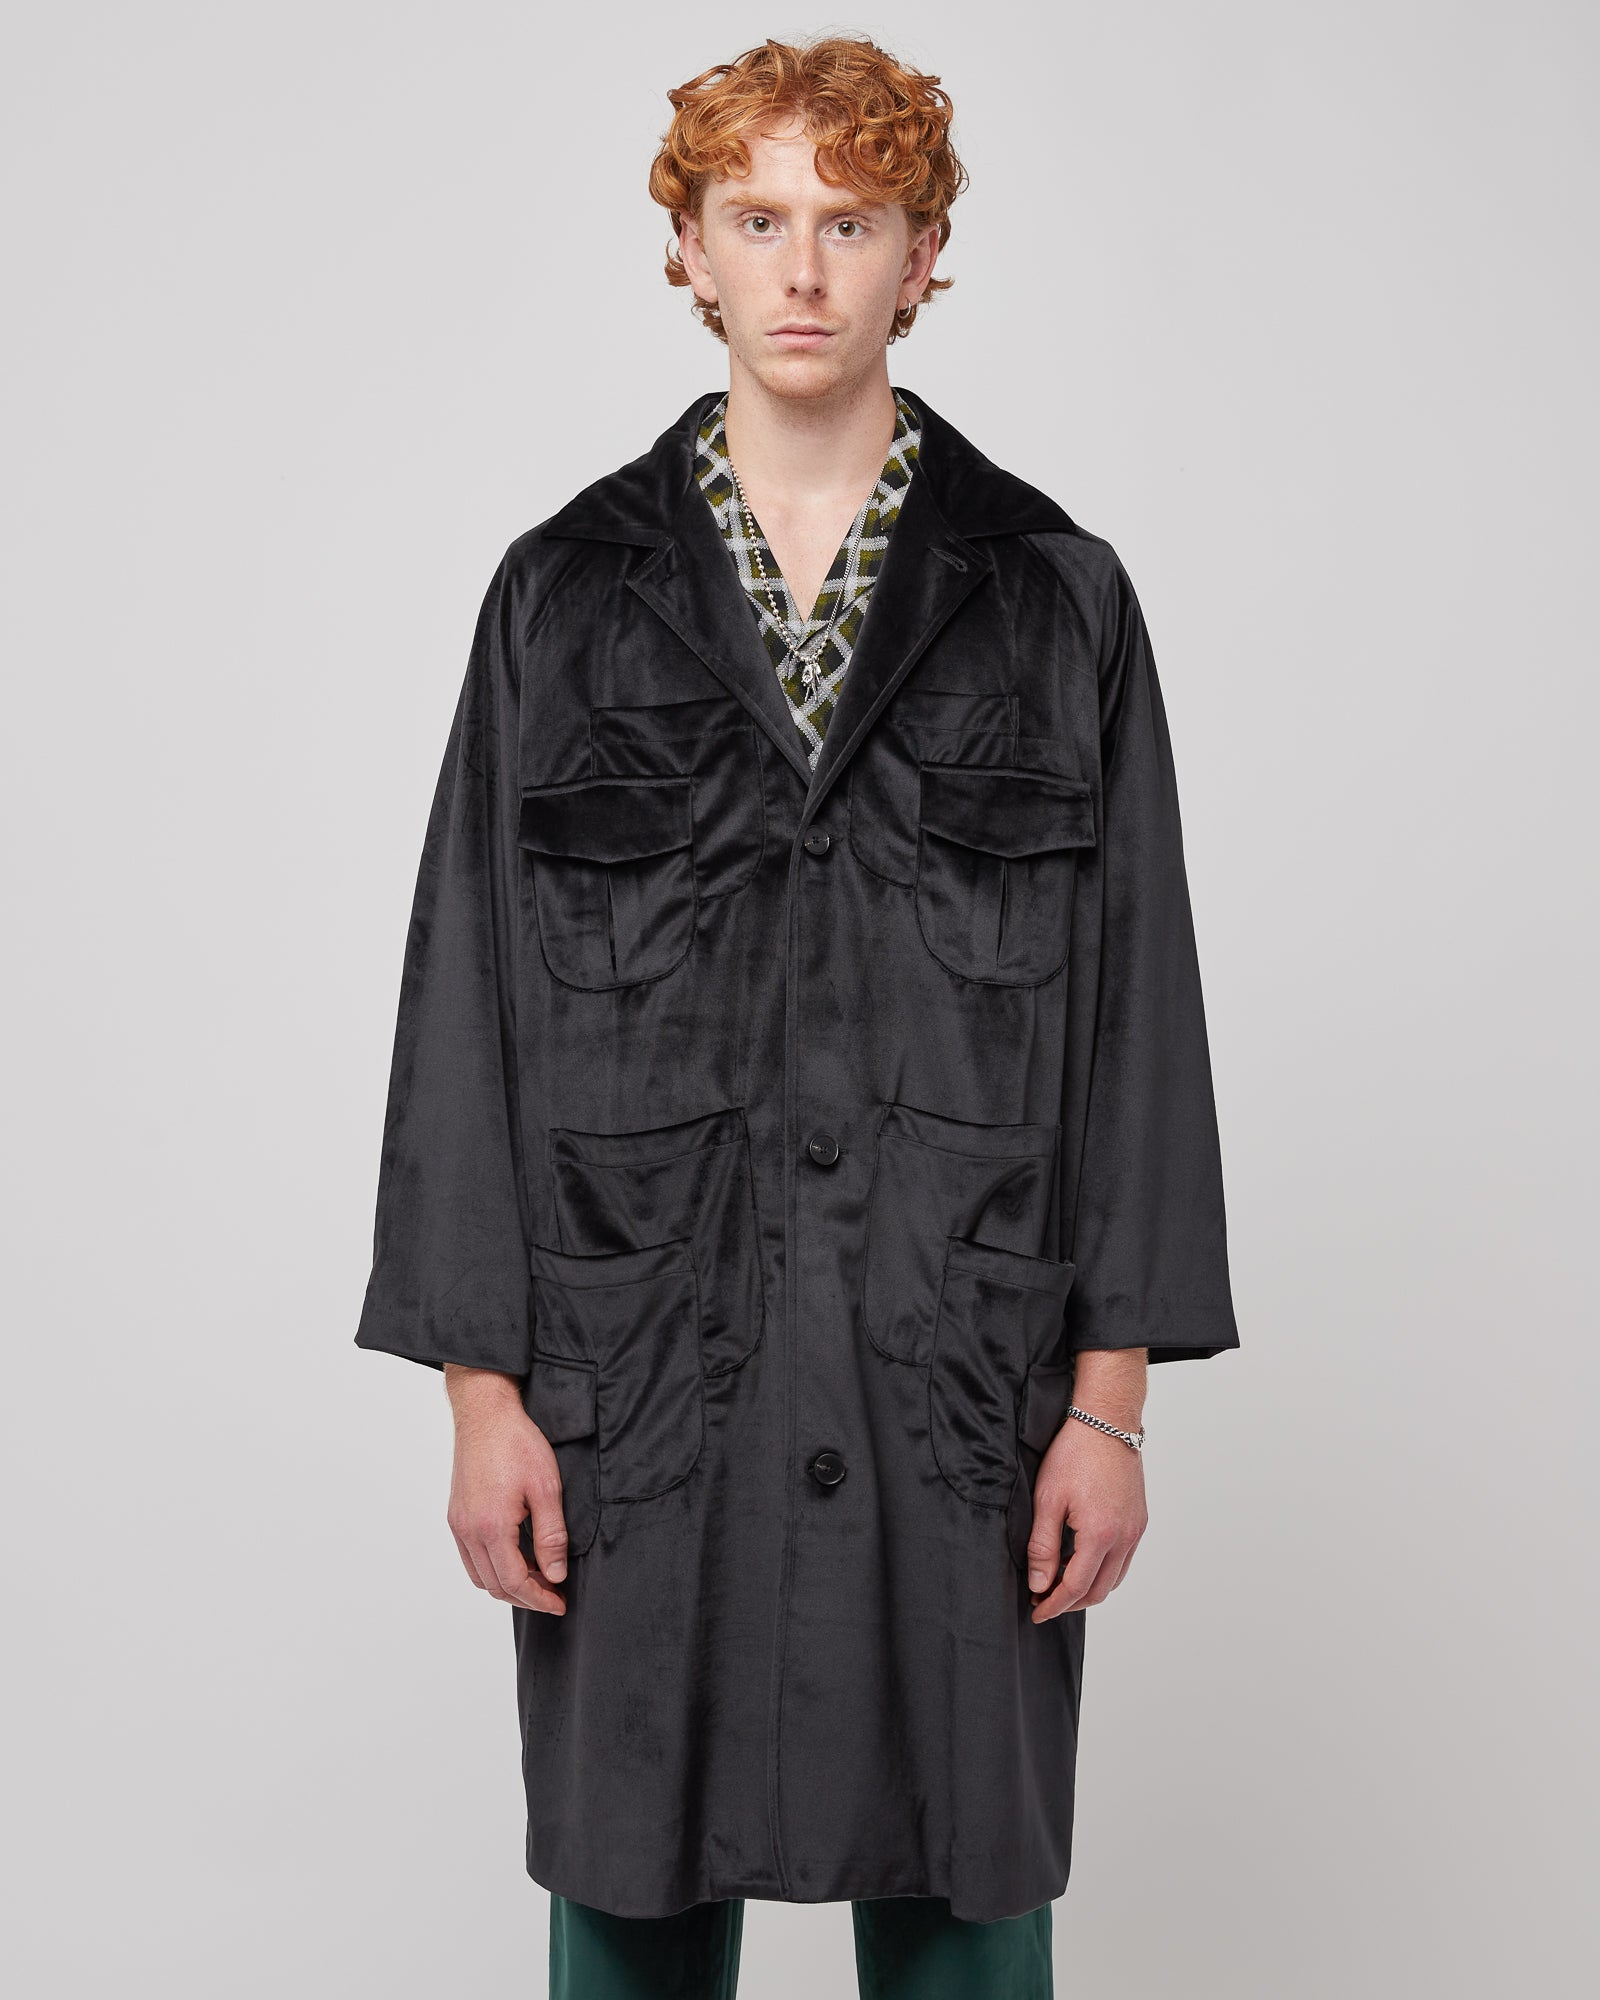 Kaleidoscope Robe in Black